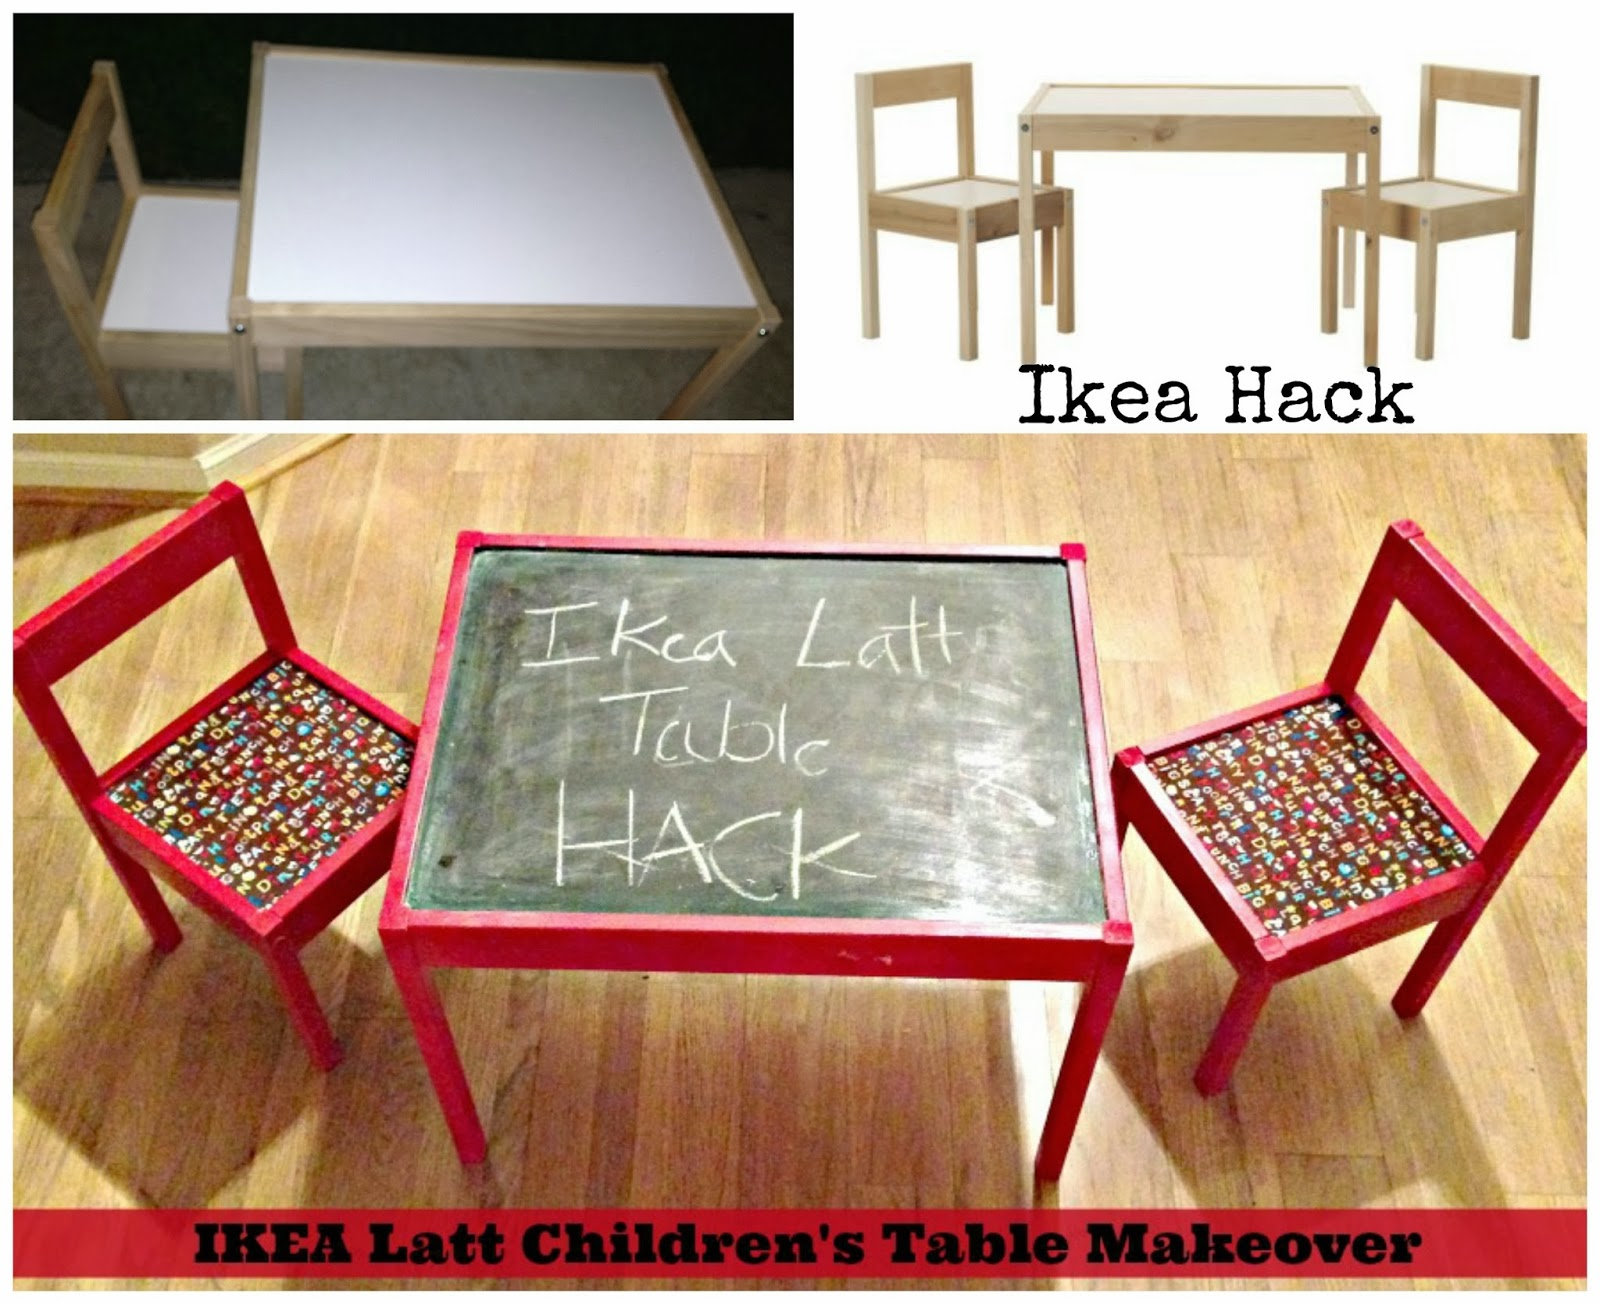 Ikea Latt Children's Table Makeover